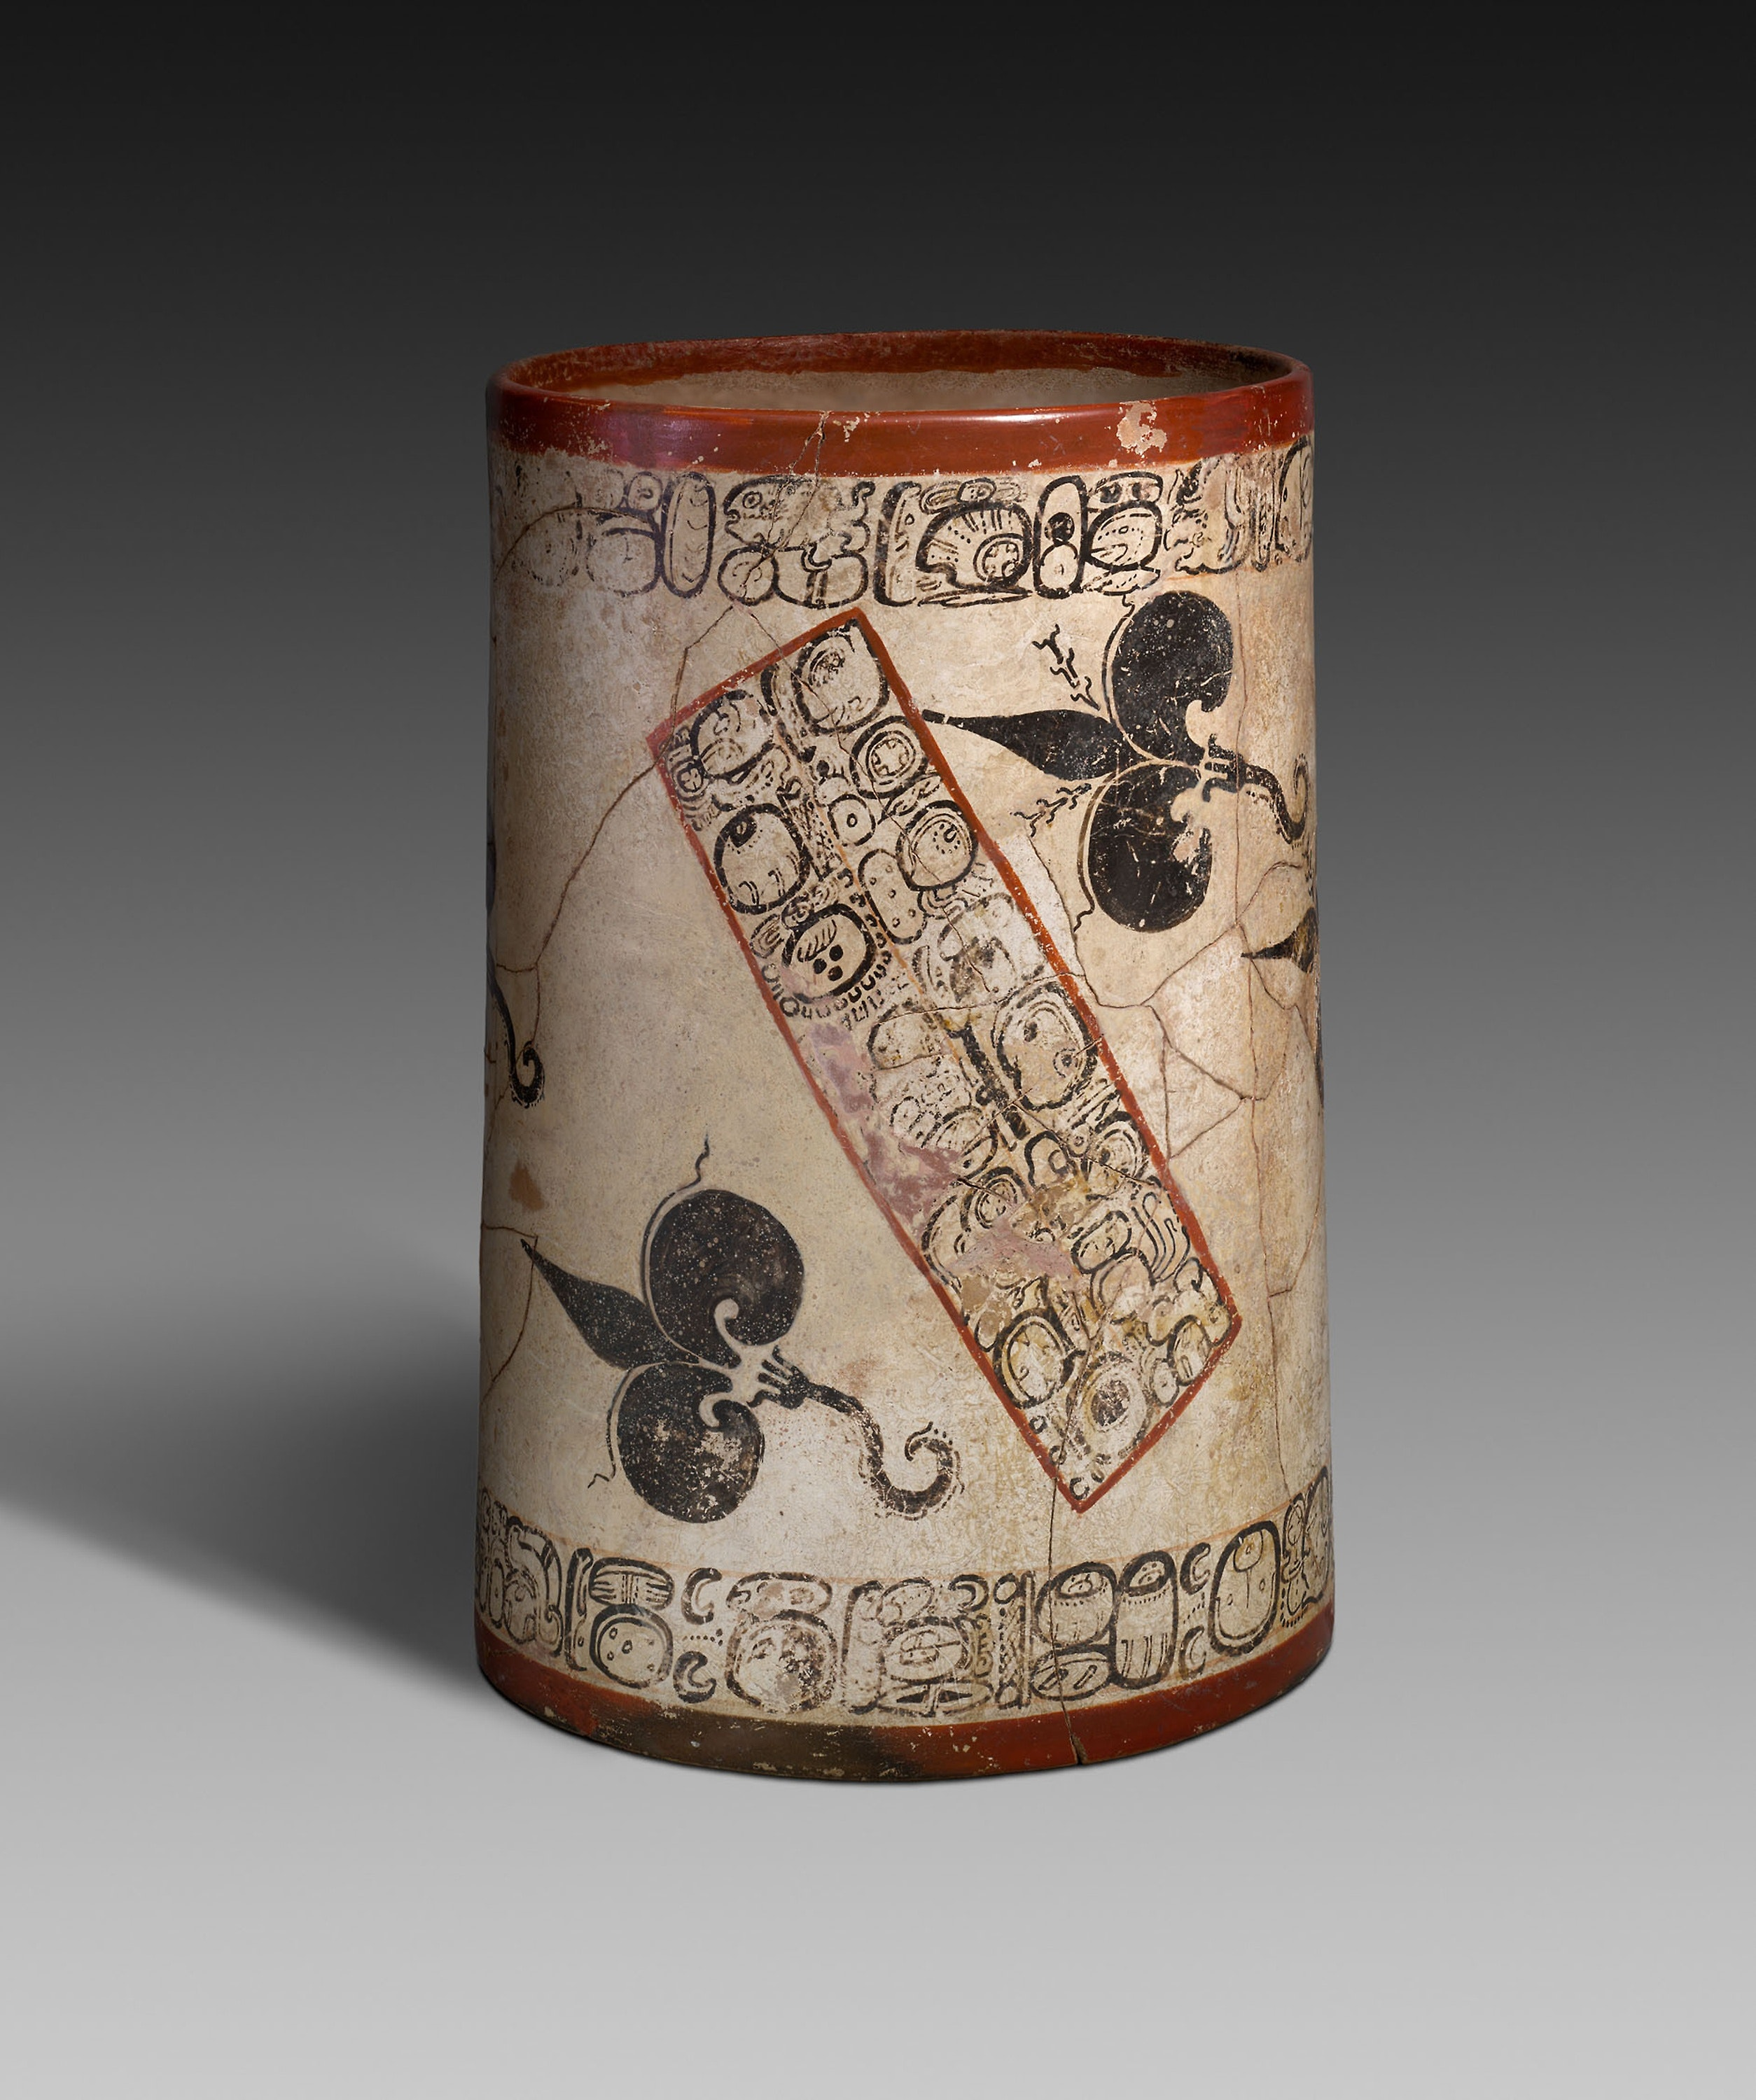 A vessel with water lilies and delicate inscriptions painted by Ah Maxam.